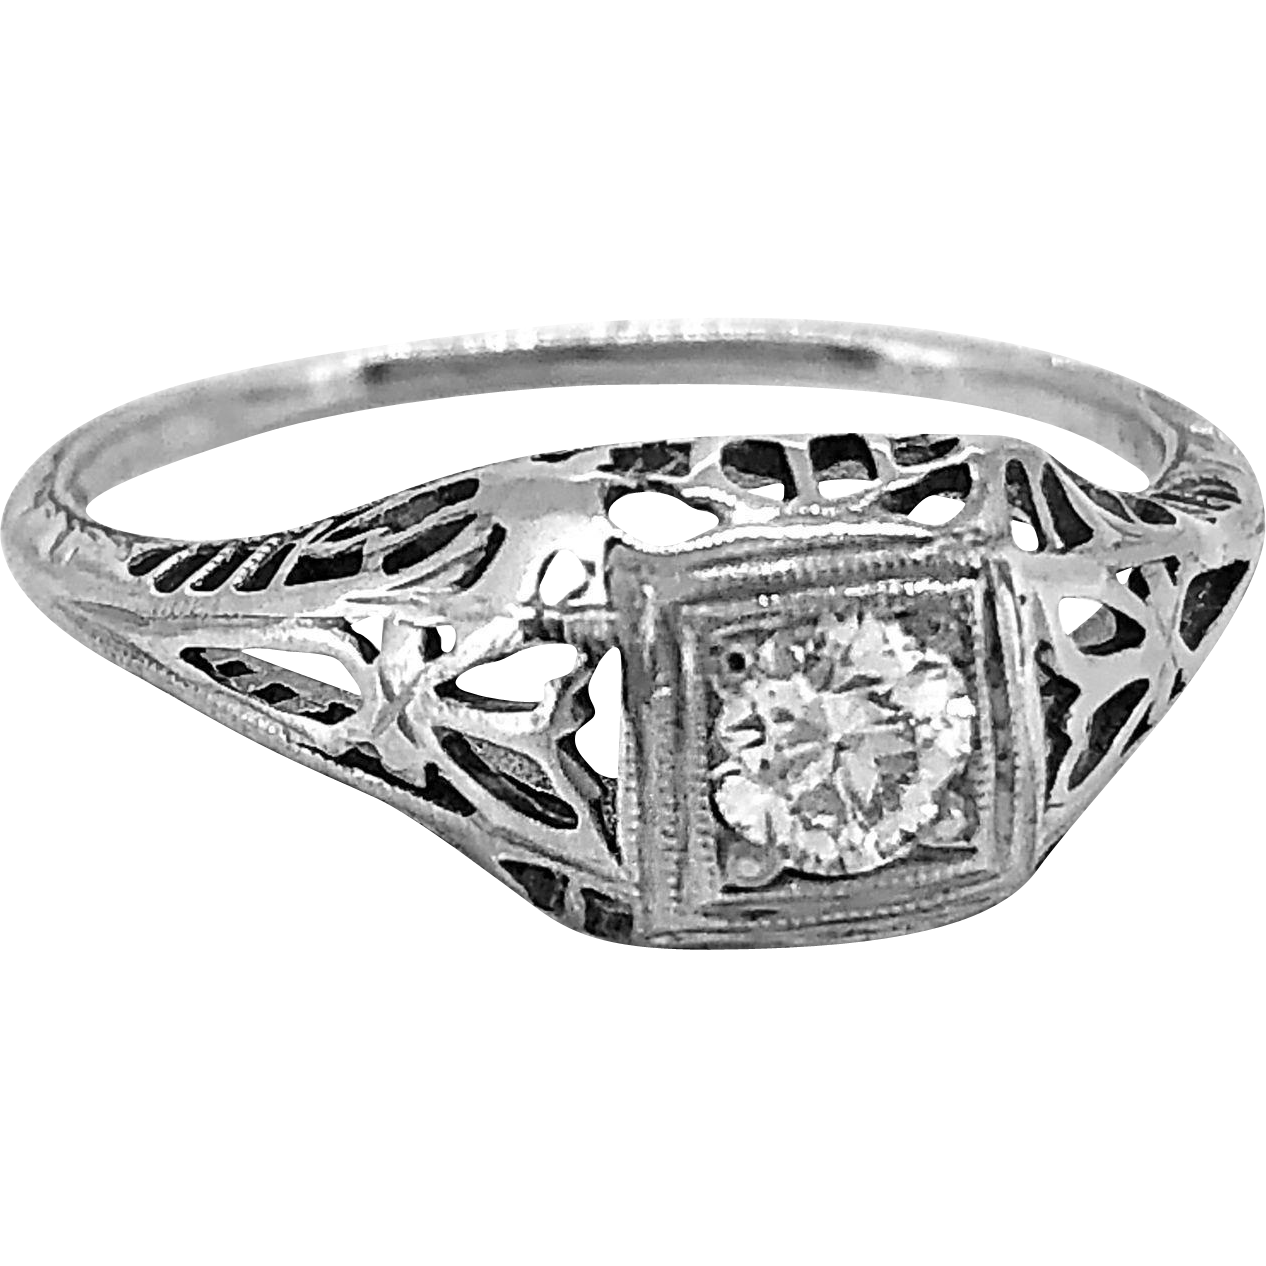 .16ct. Diamond Art Deco Antique Engagement Ring 18K White Gold